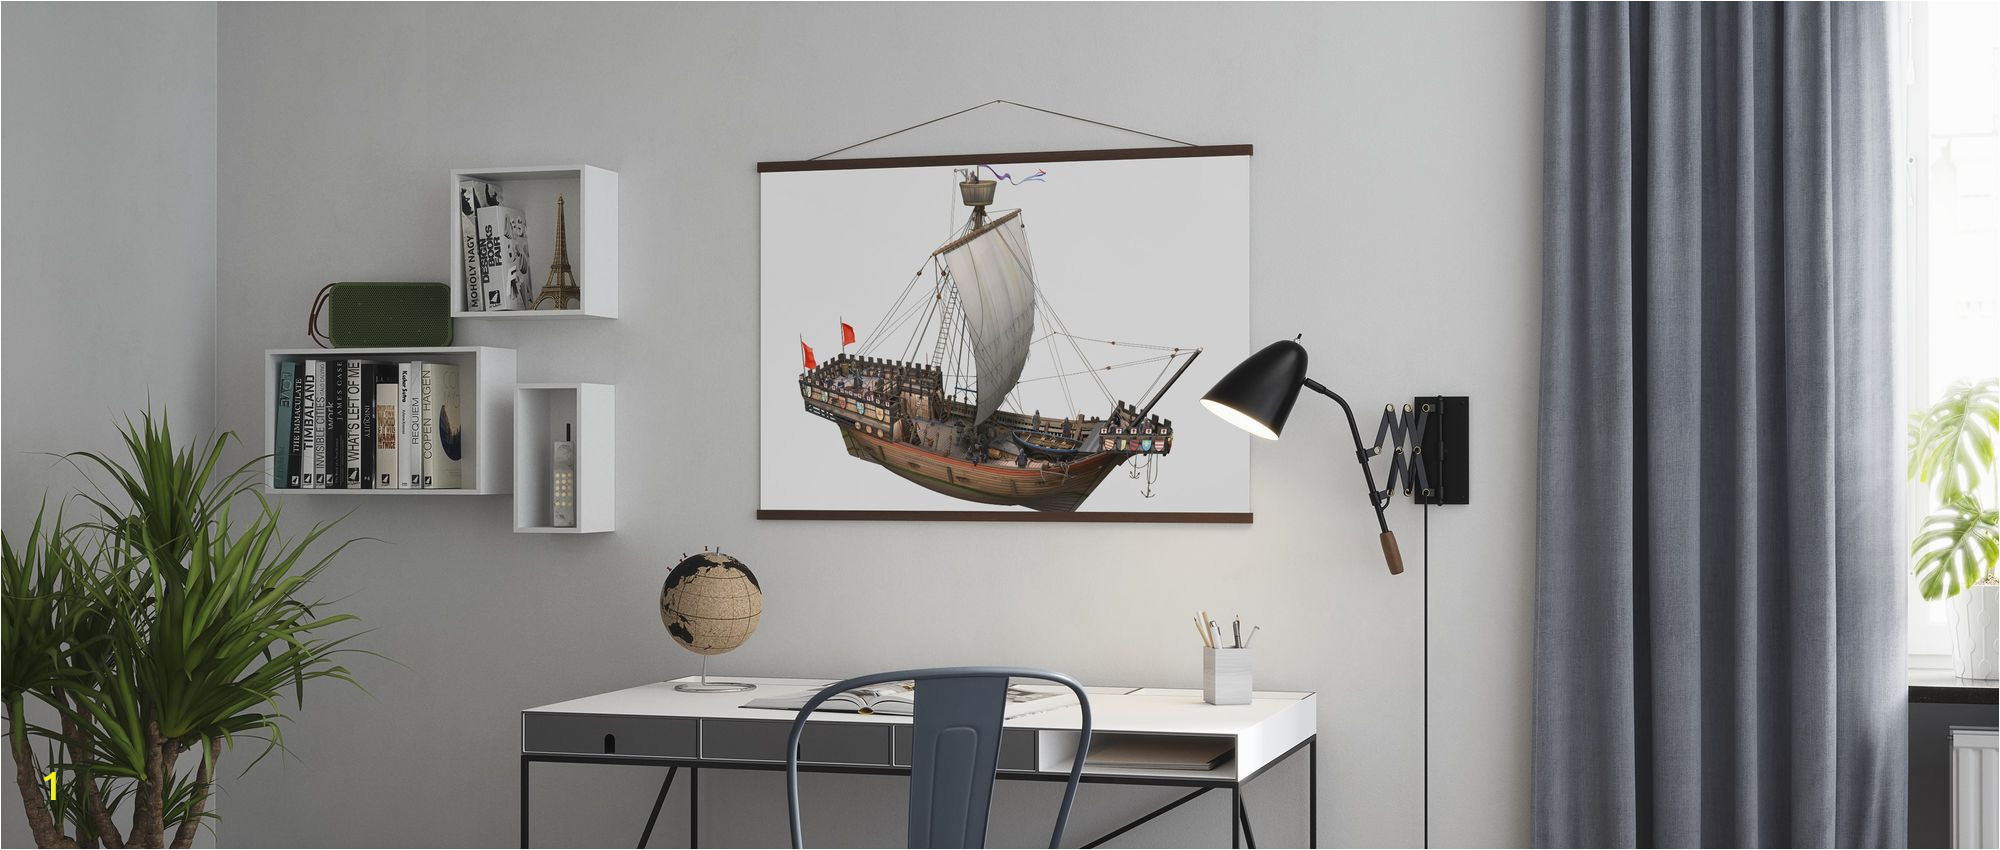 Pirate Ship Full Wall Mural Pirate Ship Trendy Poster Wall